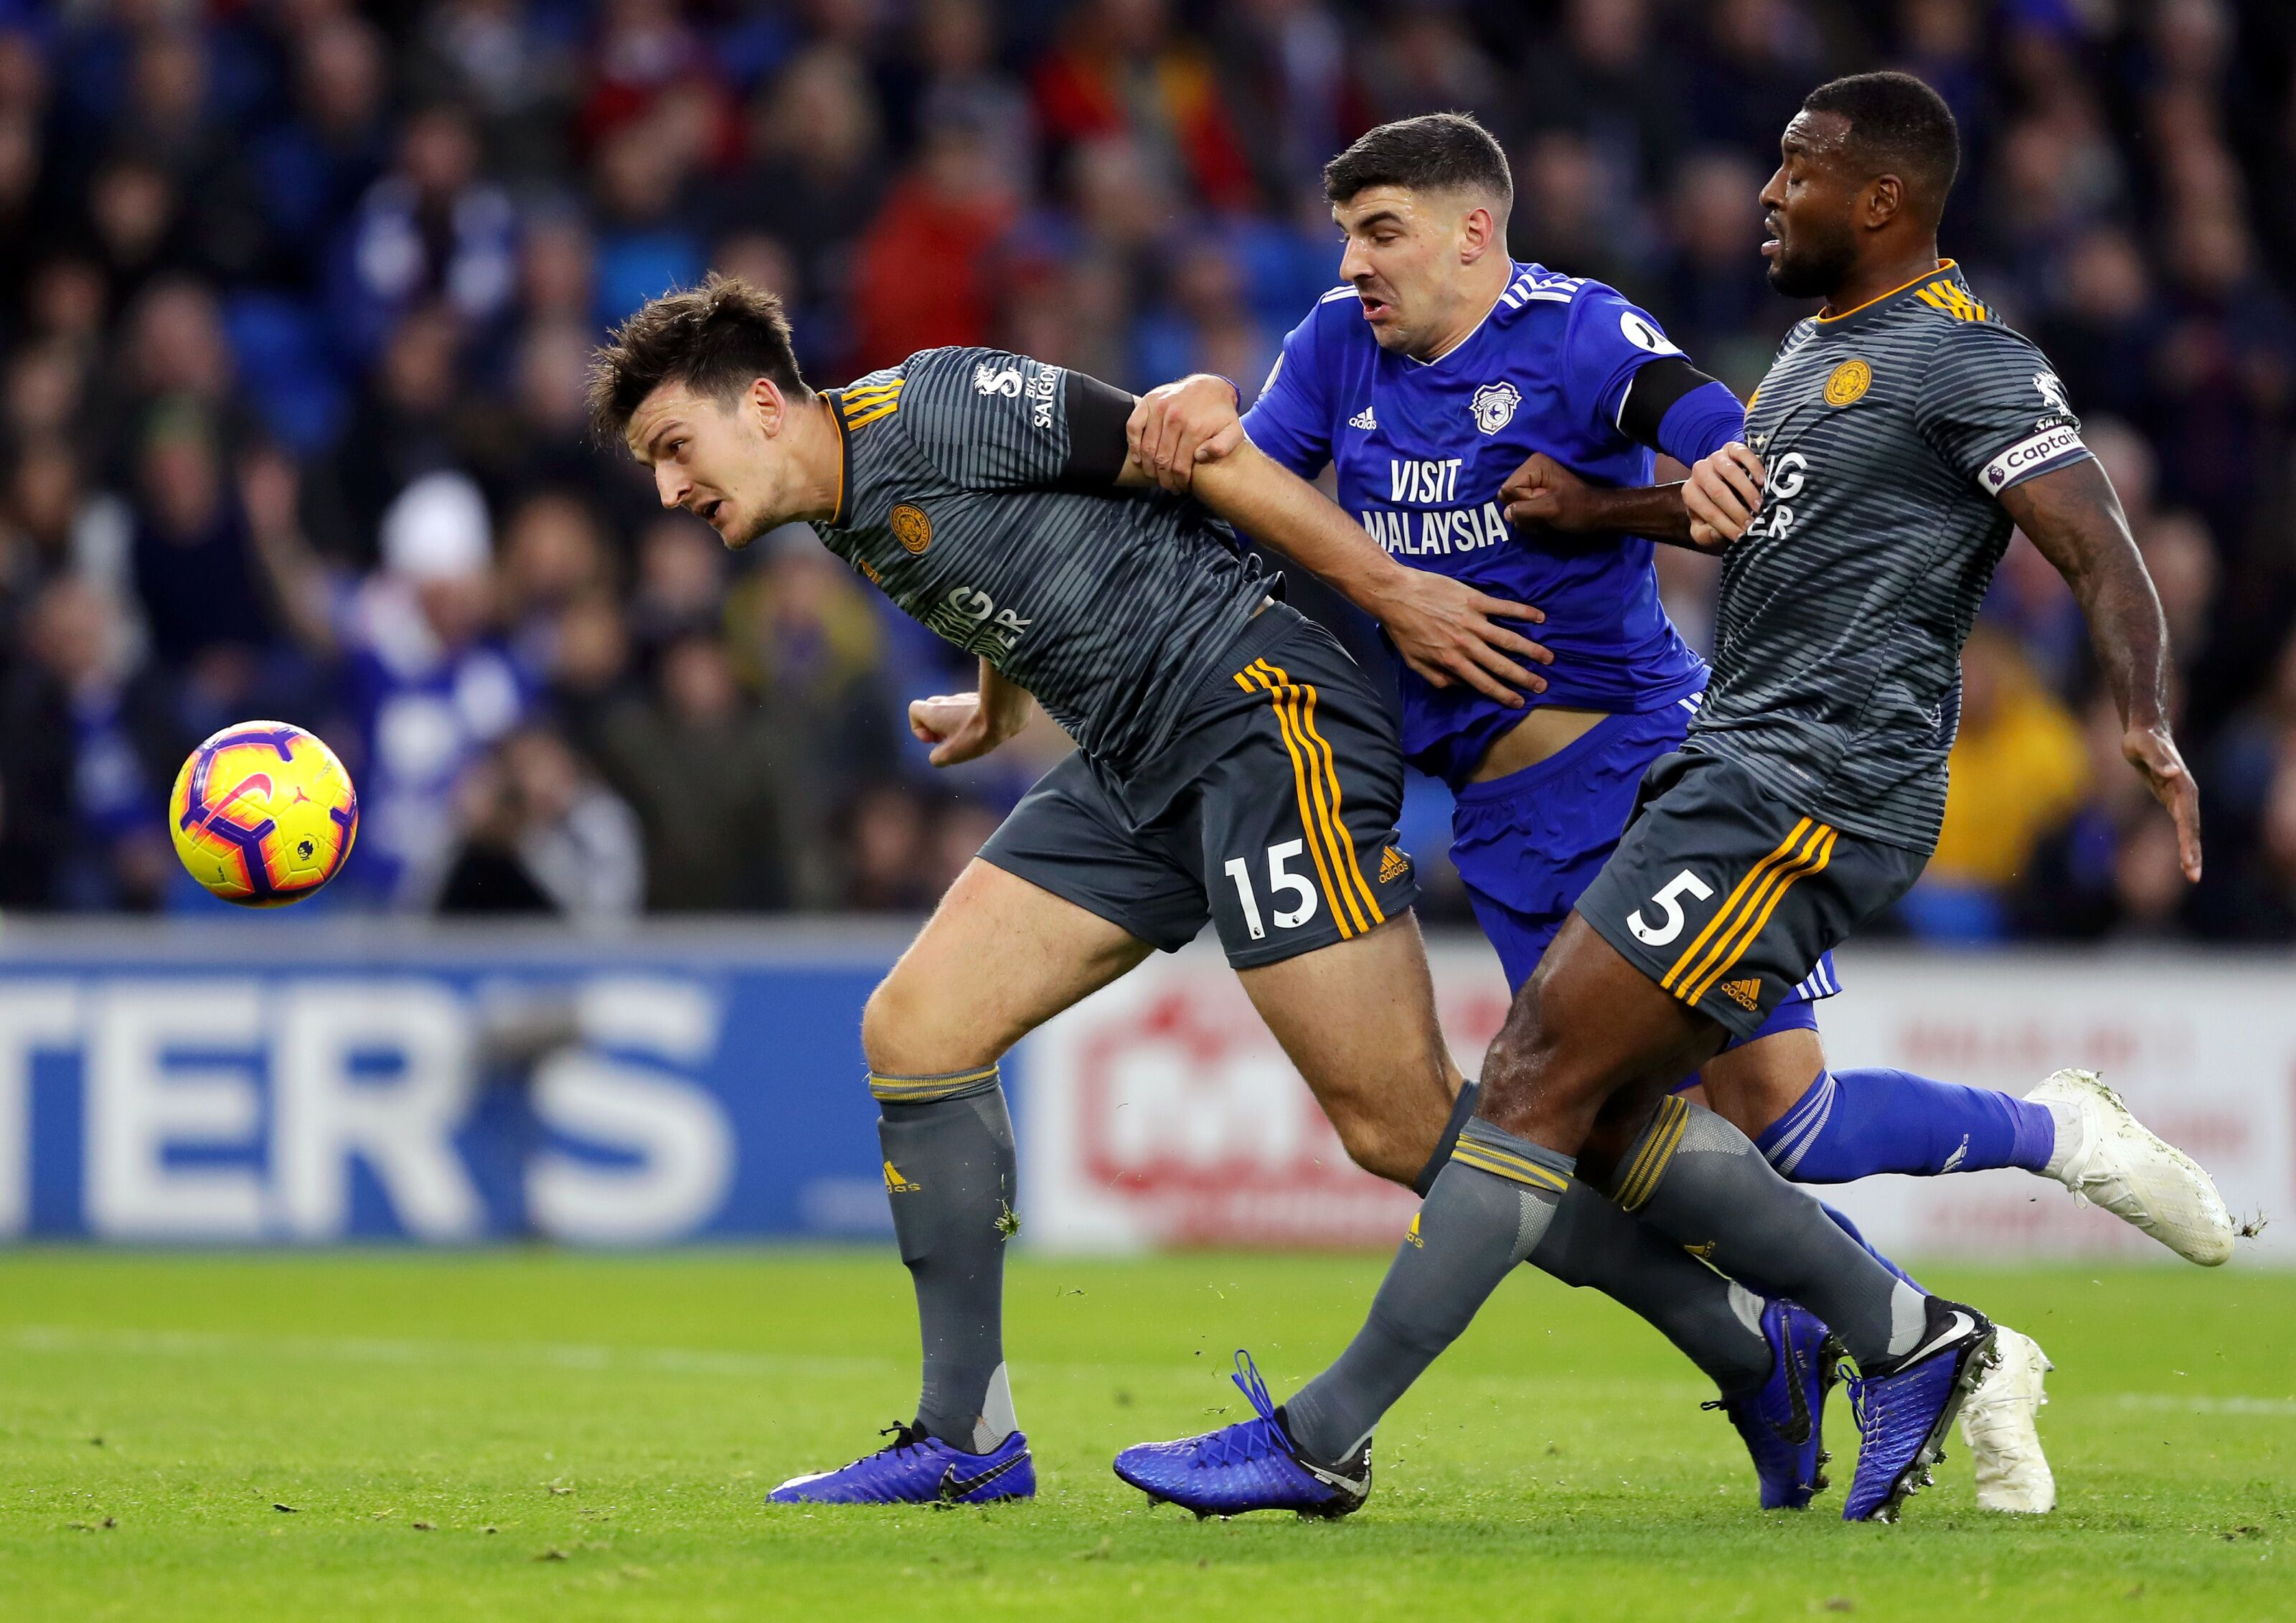 Wes Morgan's form may keep Harry Maguire on the sideline